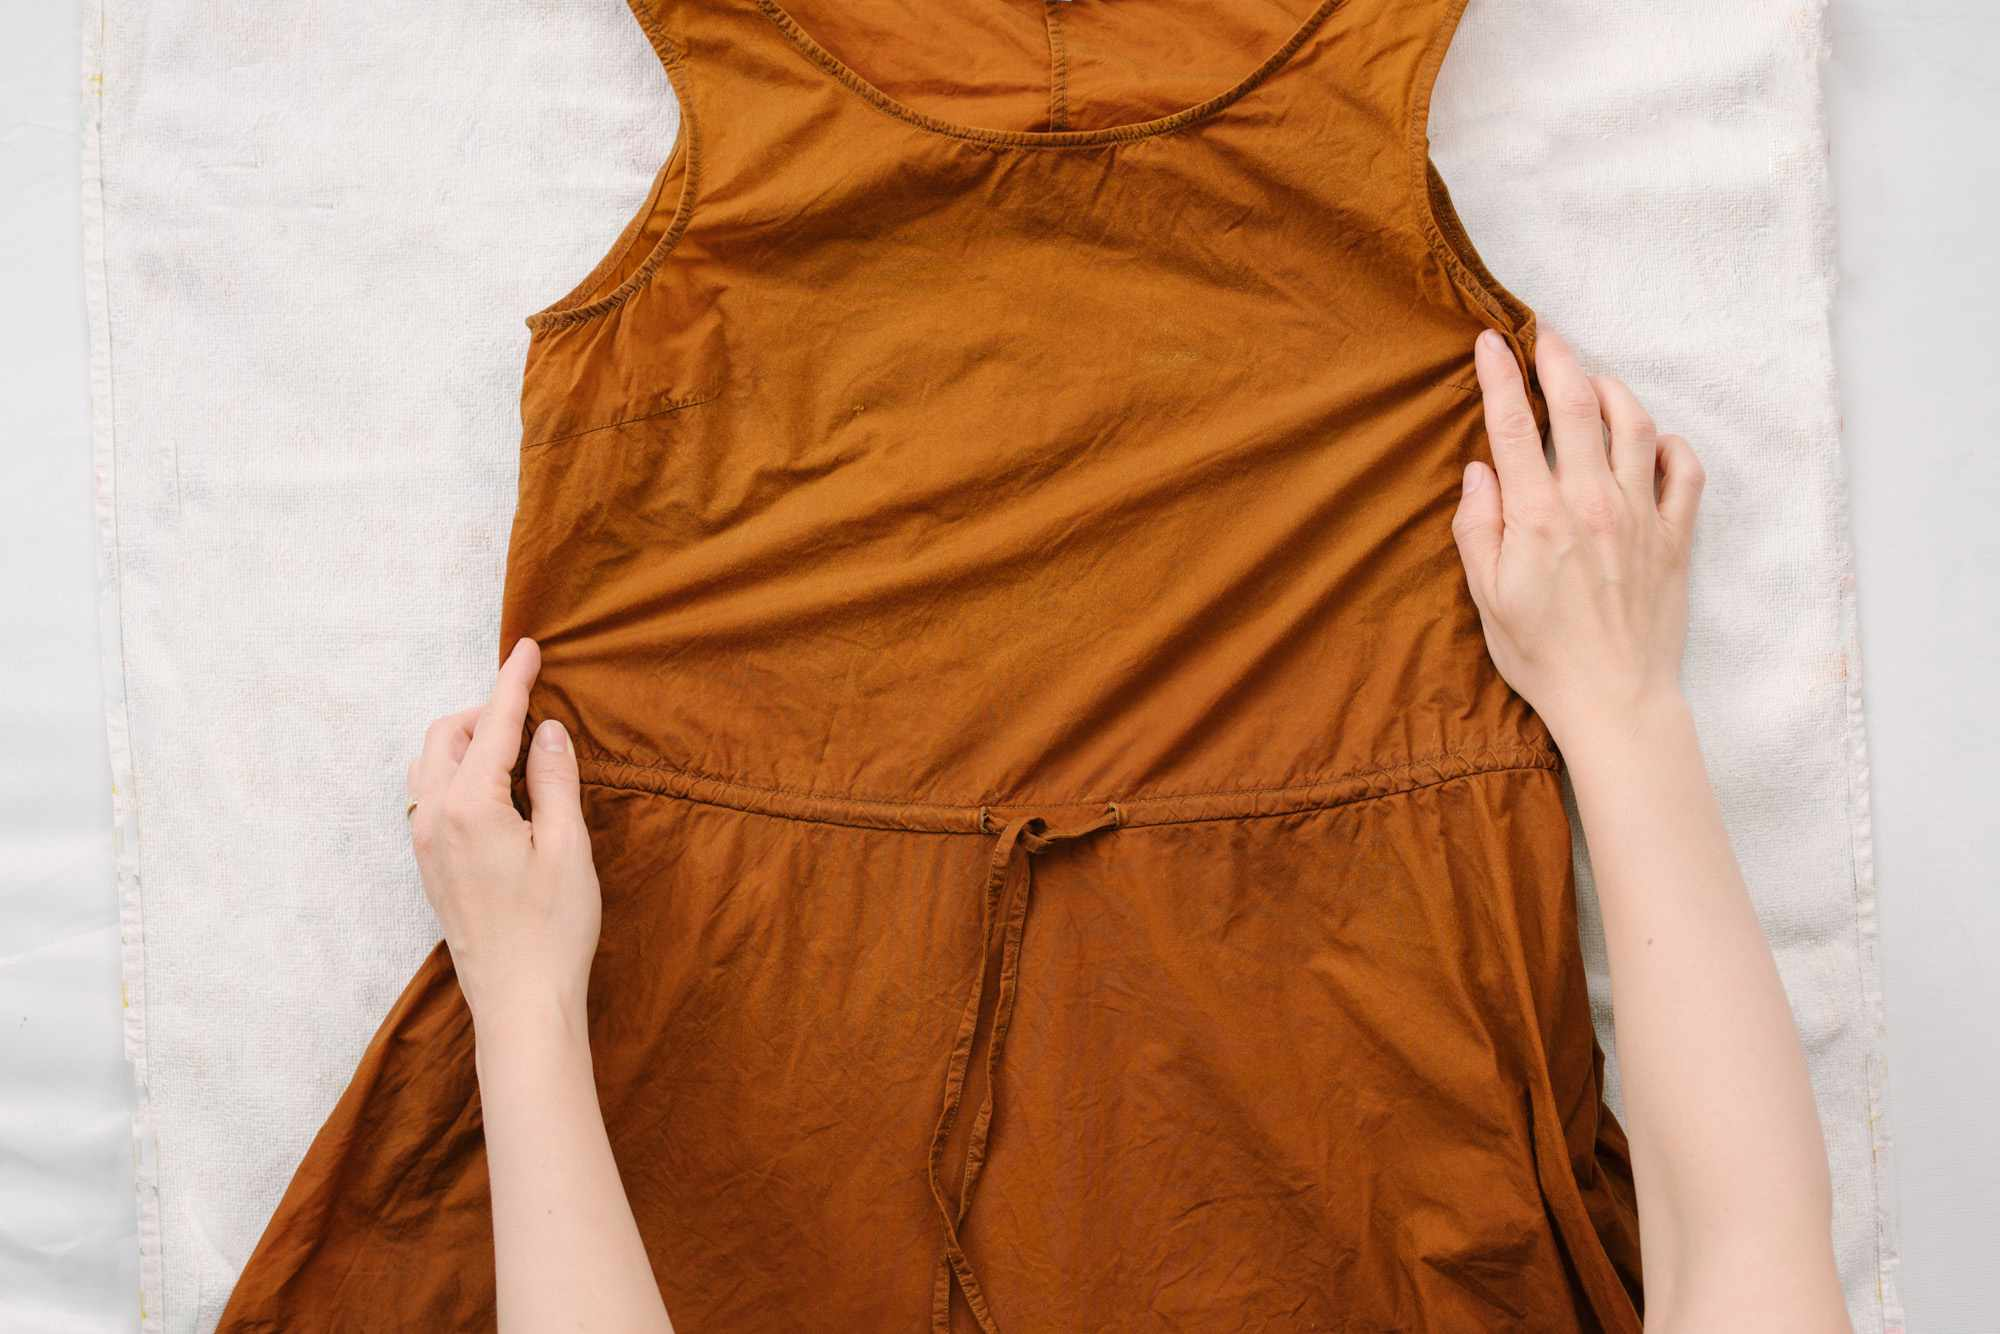 How to Wash Viscose Fabric